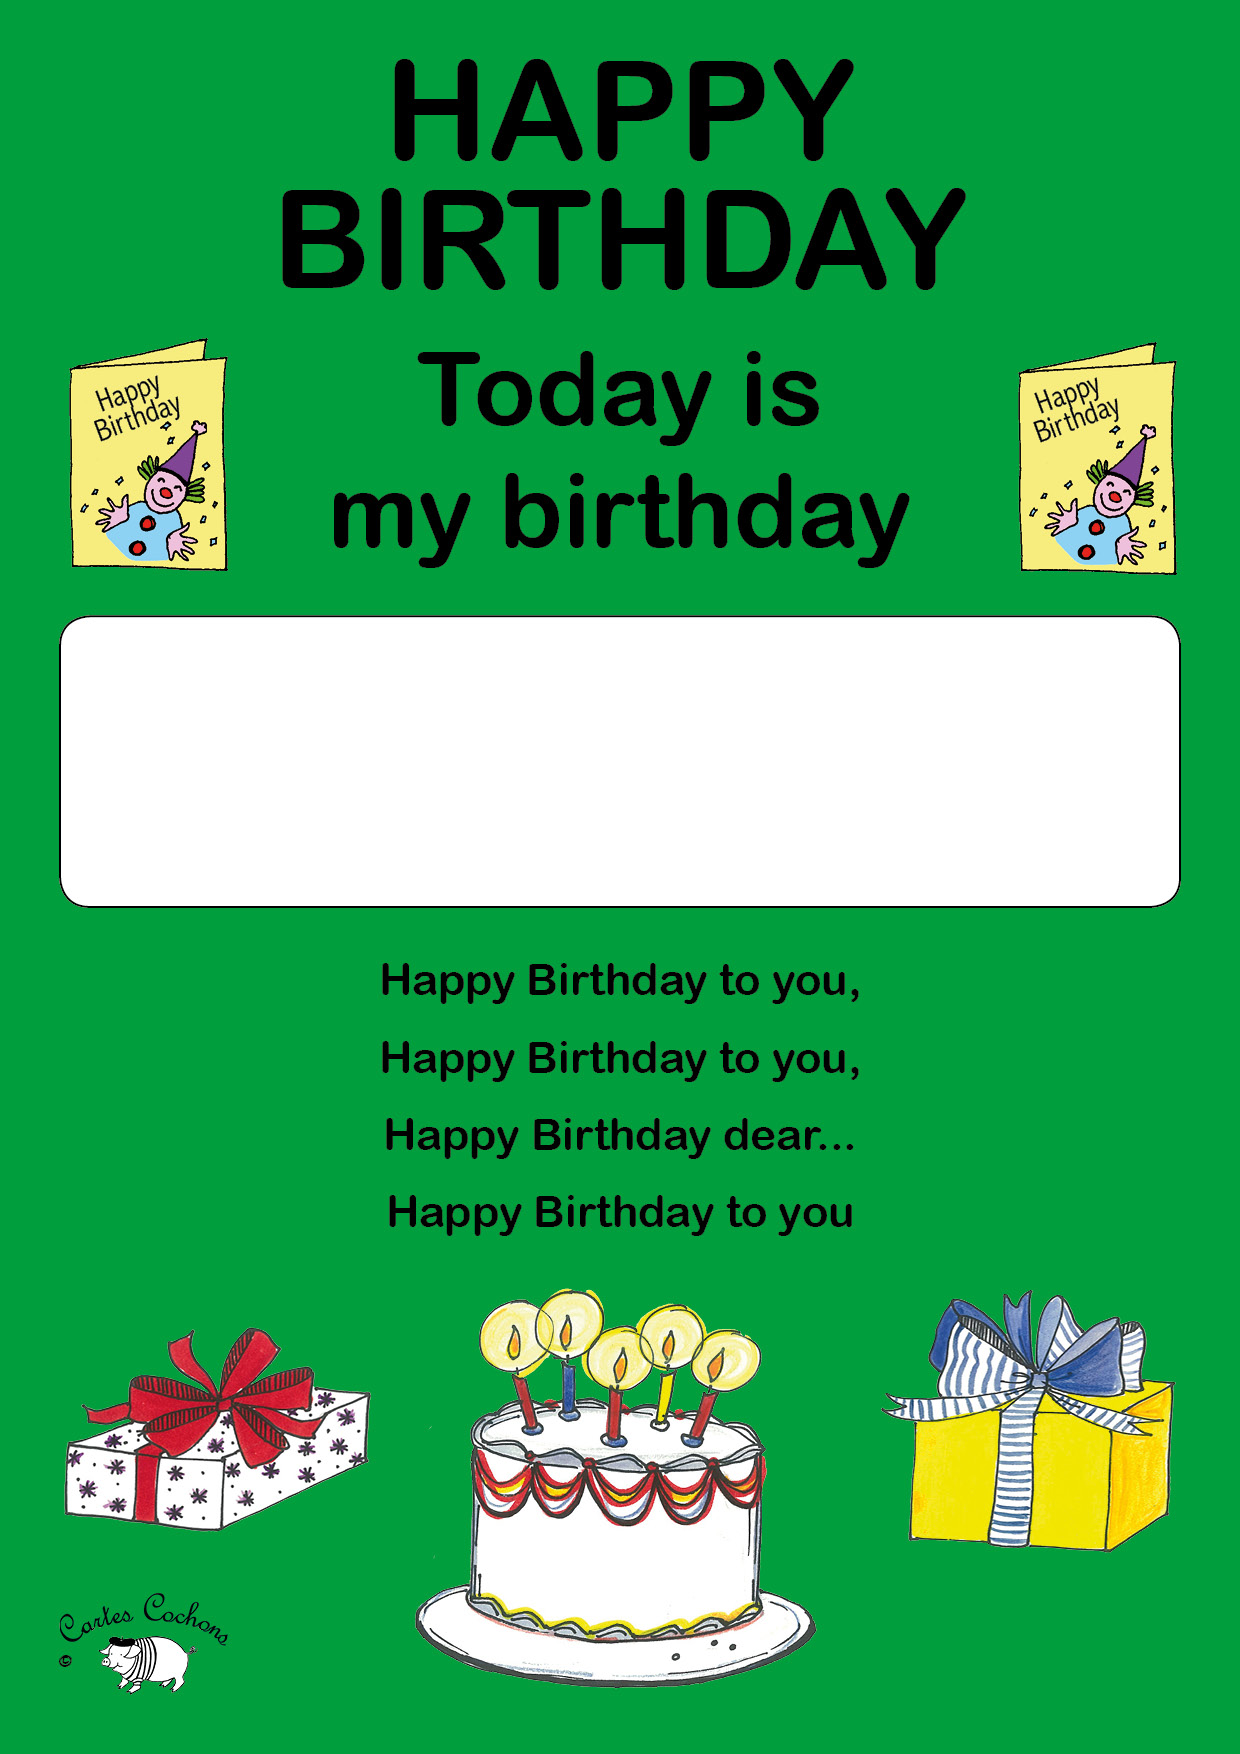 English Today Is My Birthday